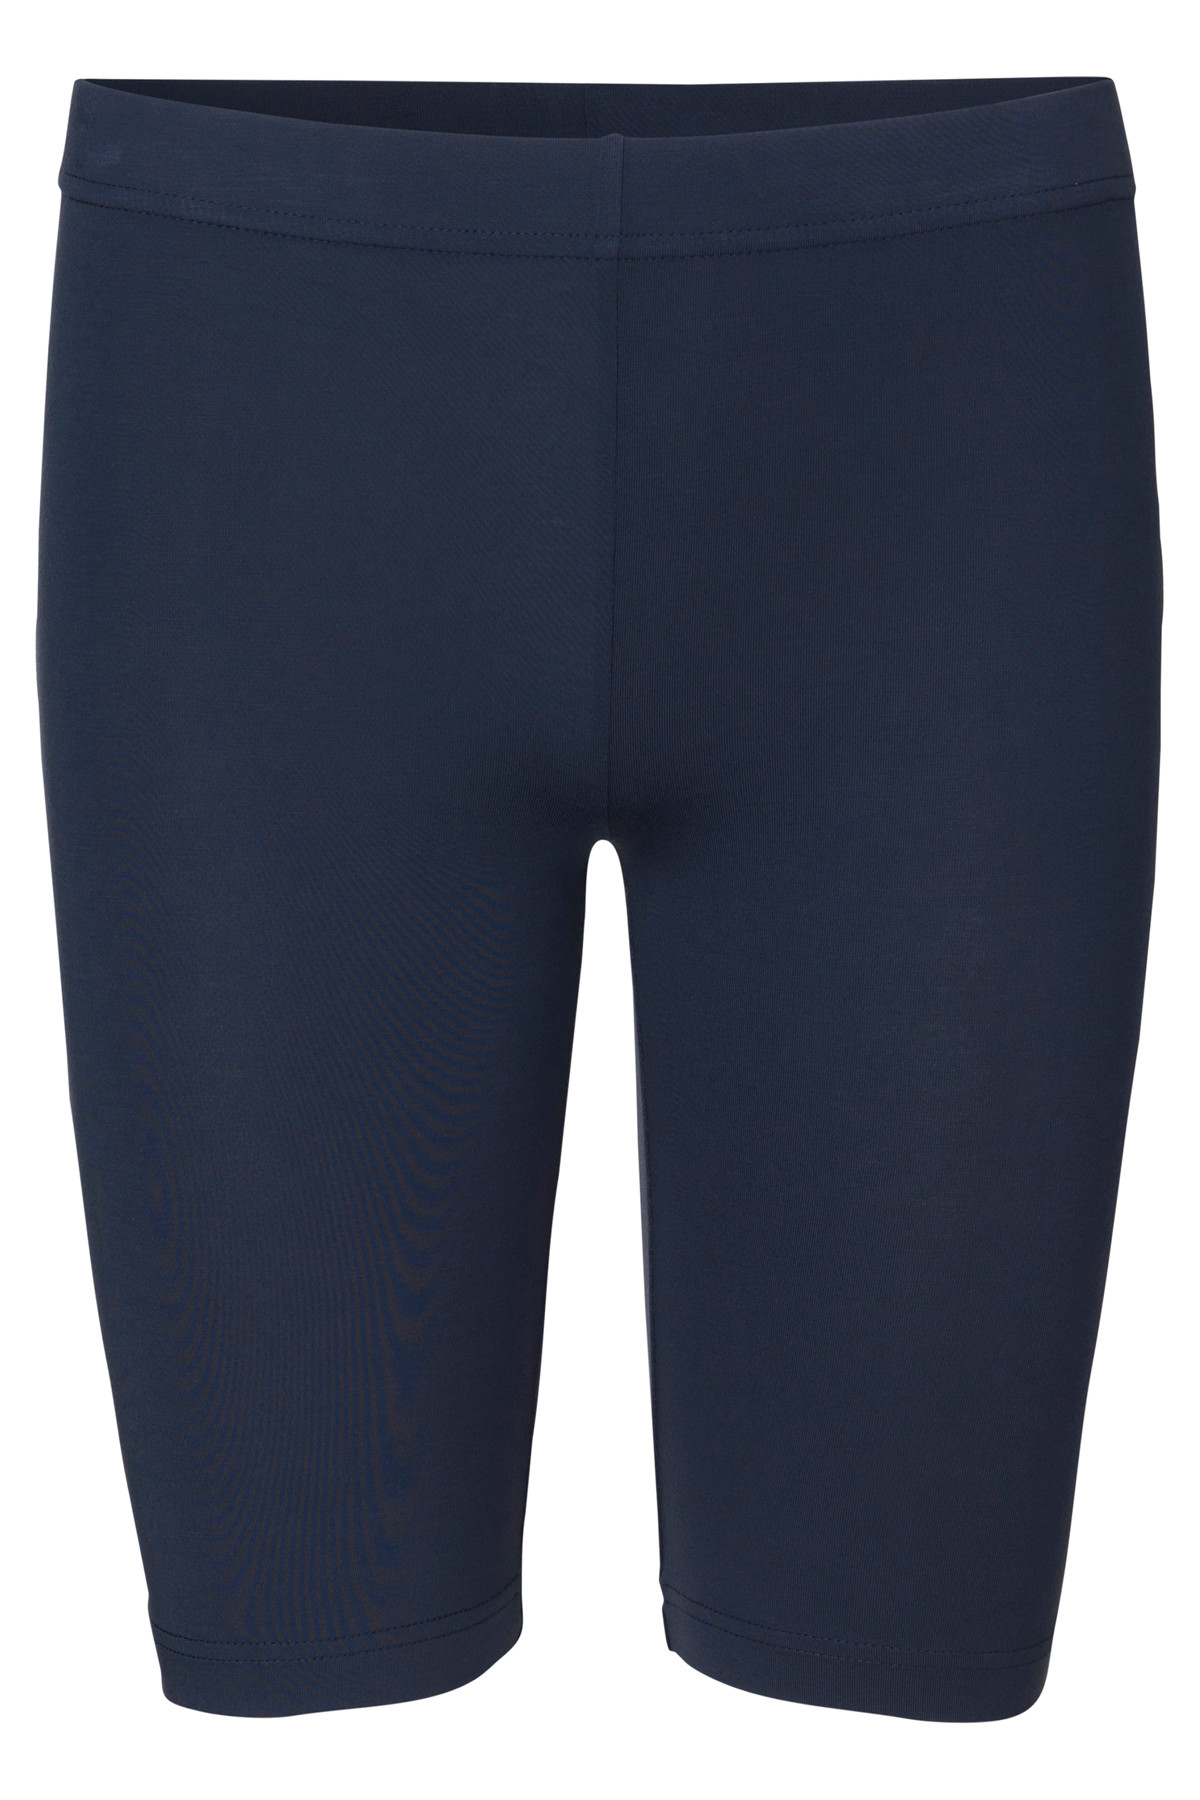 NOA NOA SHORT LEGGINGS 1-9349-2 00690 (Blue, XL)